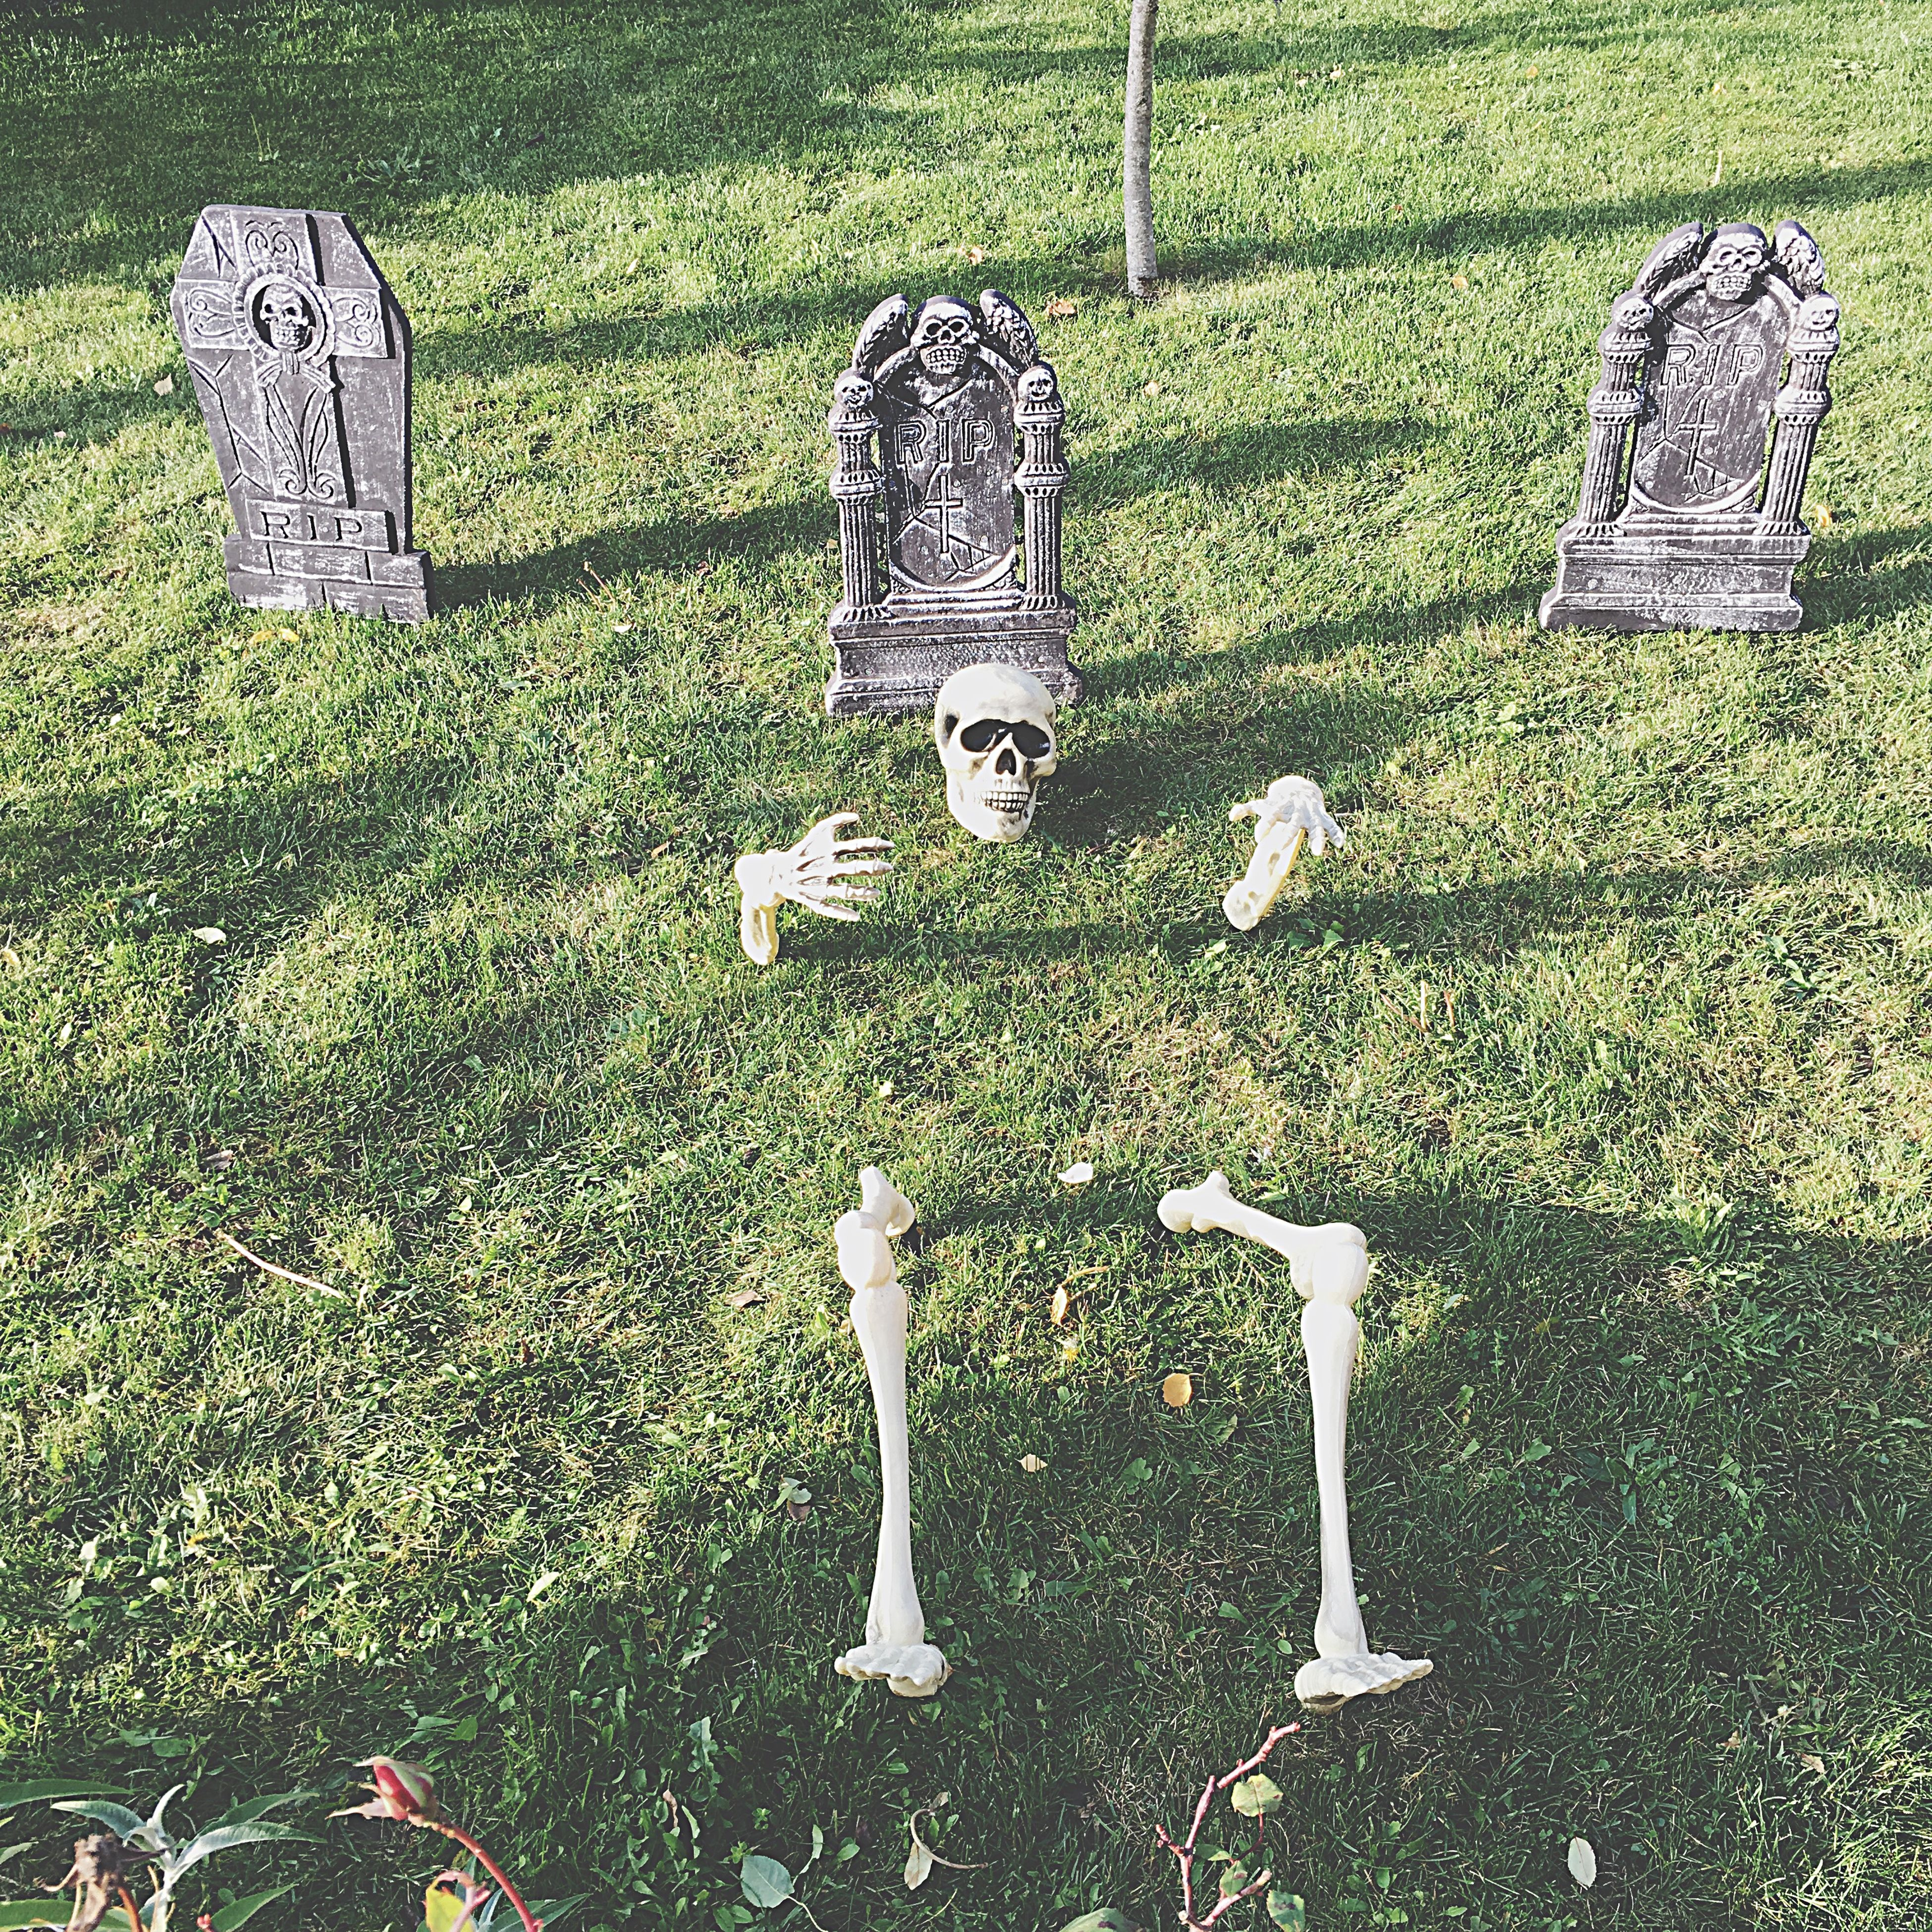 grass, high angle view, field, park - man made space, day, green color, plant, art and craft, art, grassy, outdoors, creativity, cemetery, no people, metal, human representation, bench, lawn, growth, death